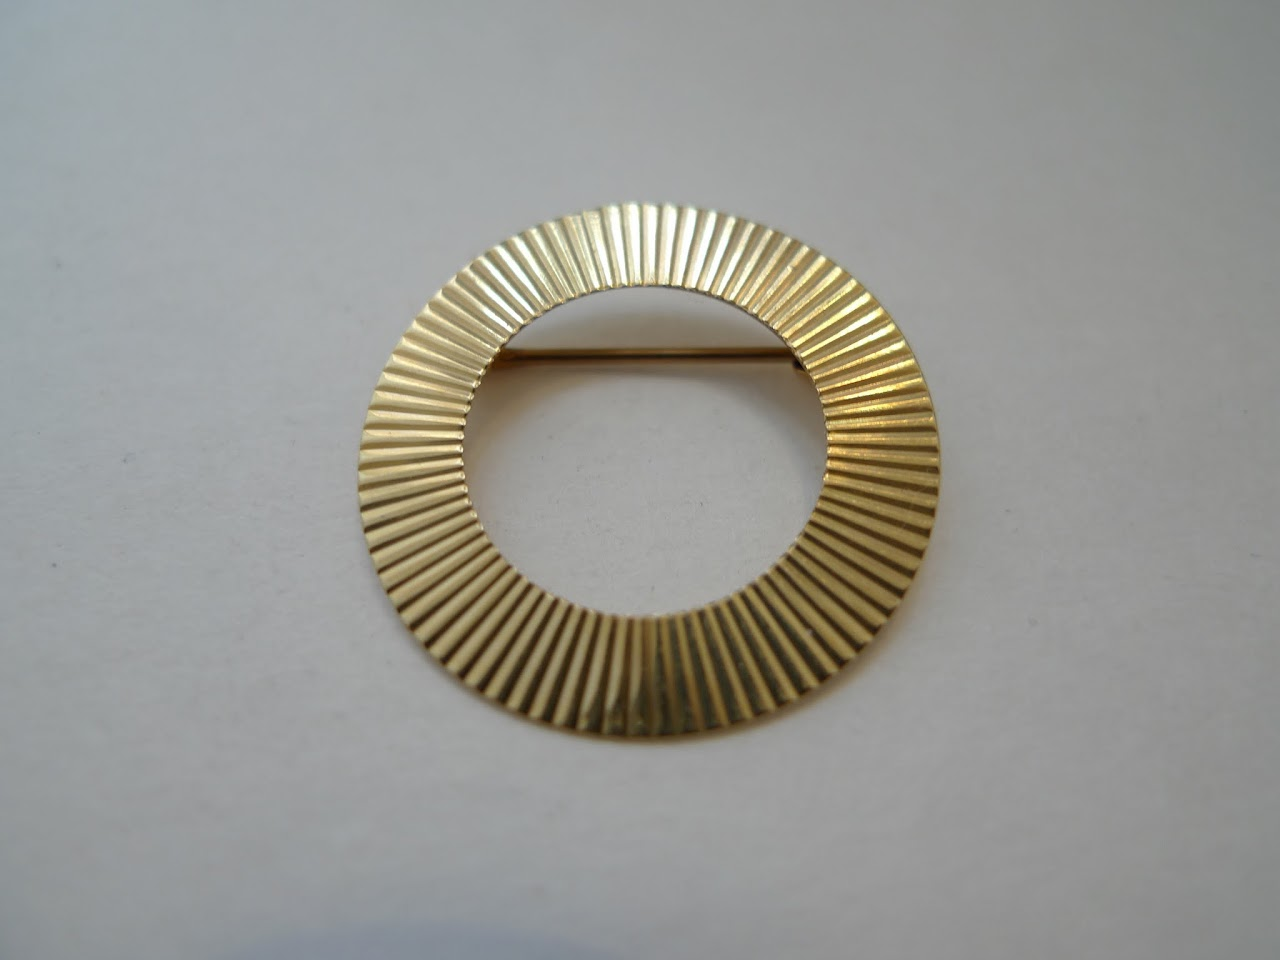 14K Gold Circular Brooch